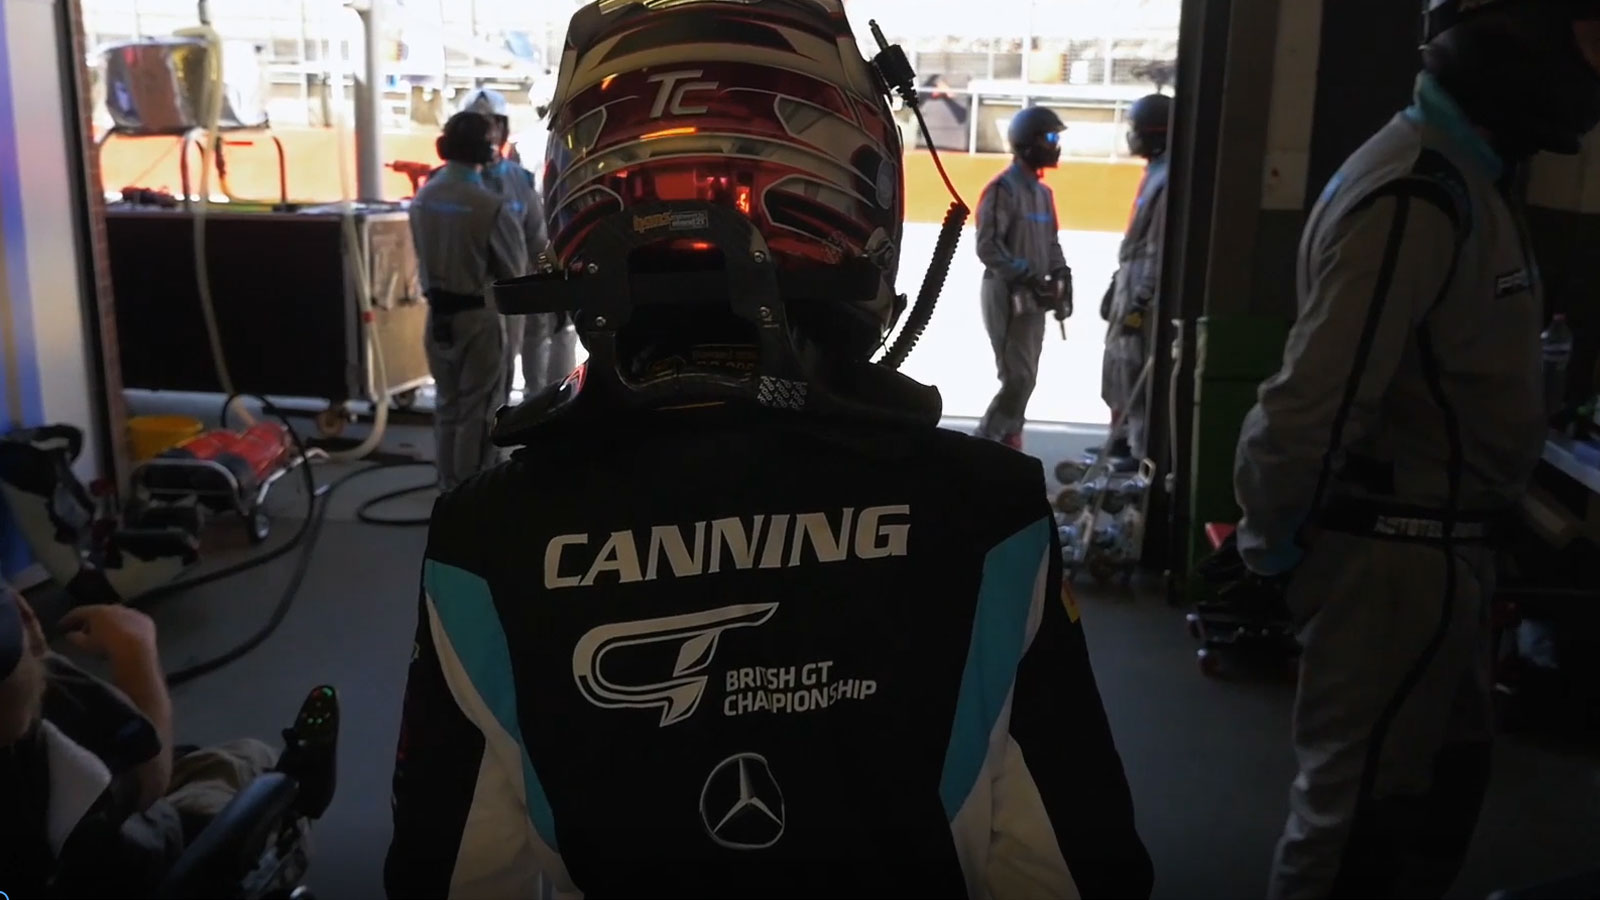 Tom Canning Racing Video